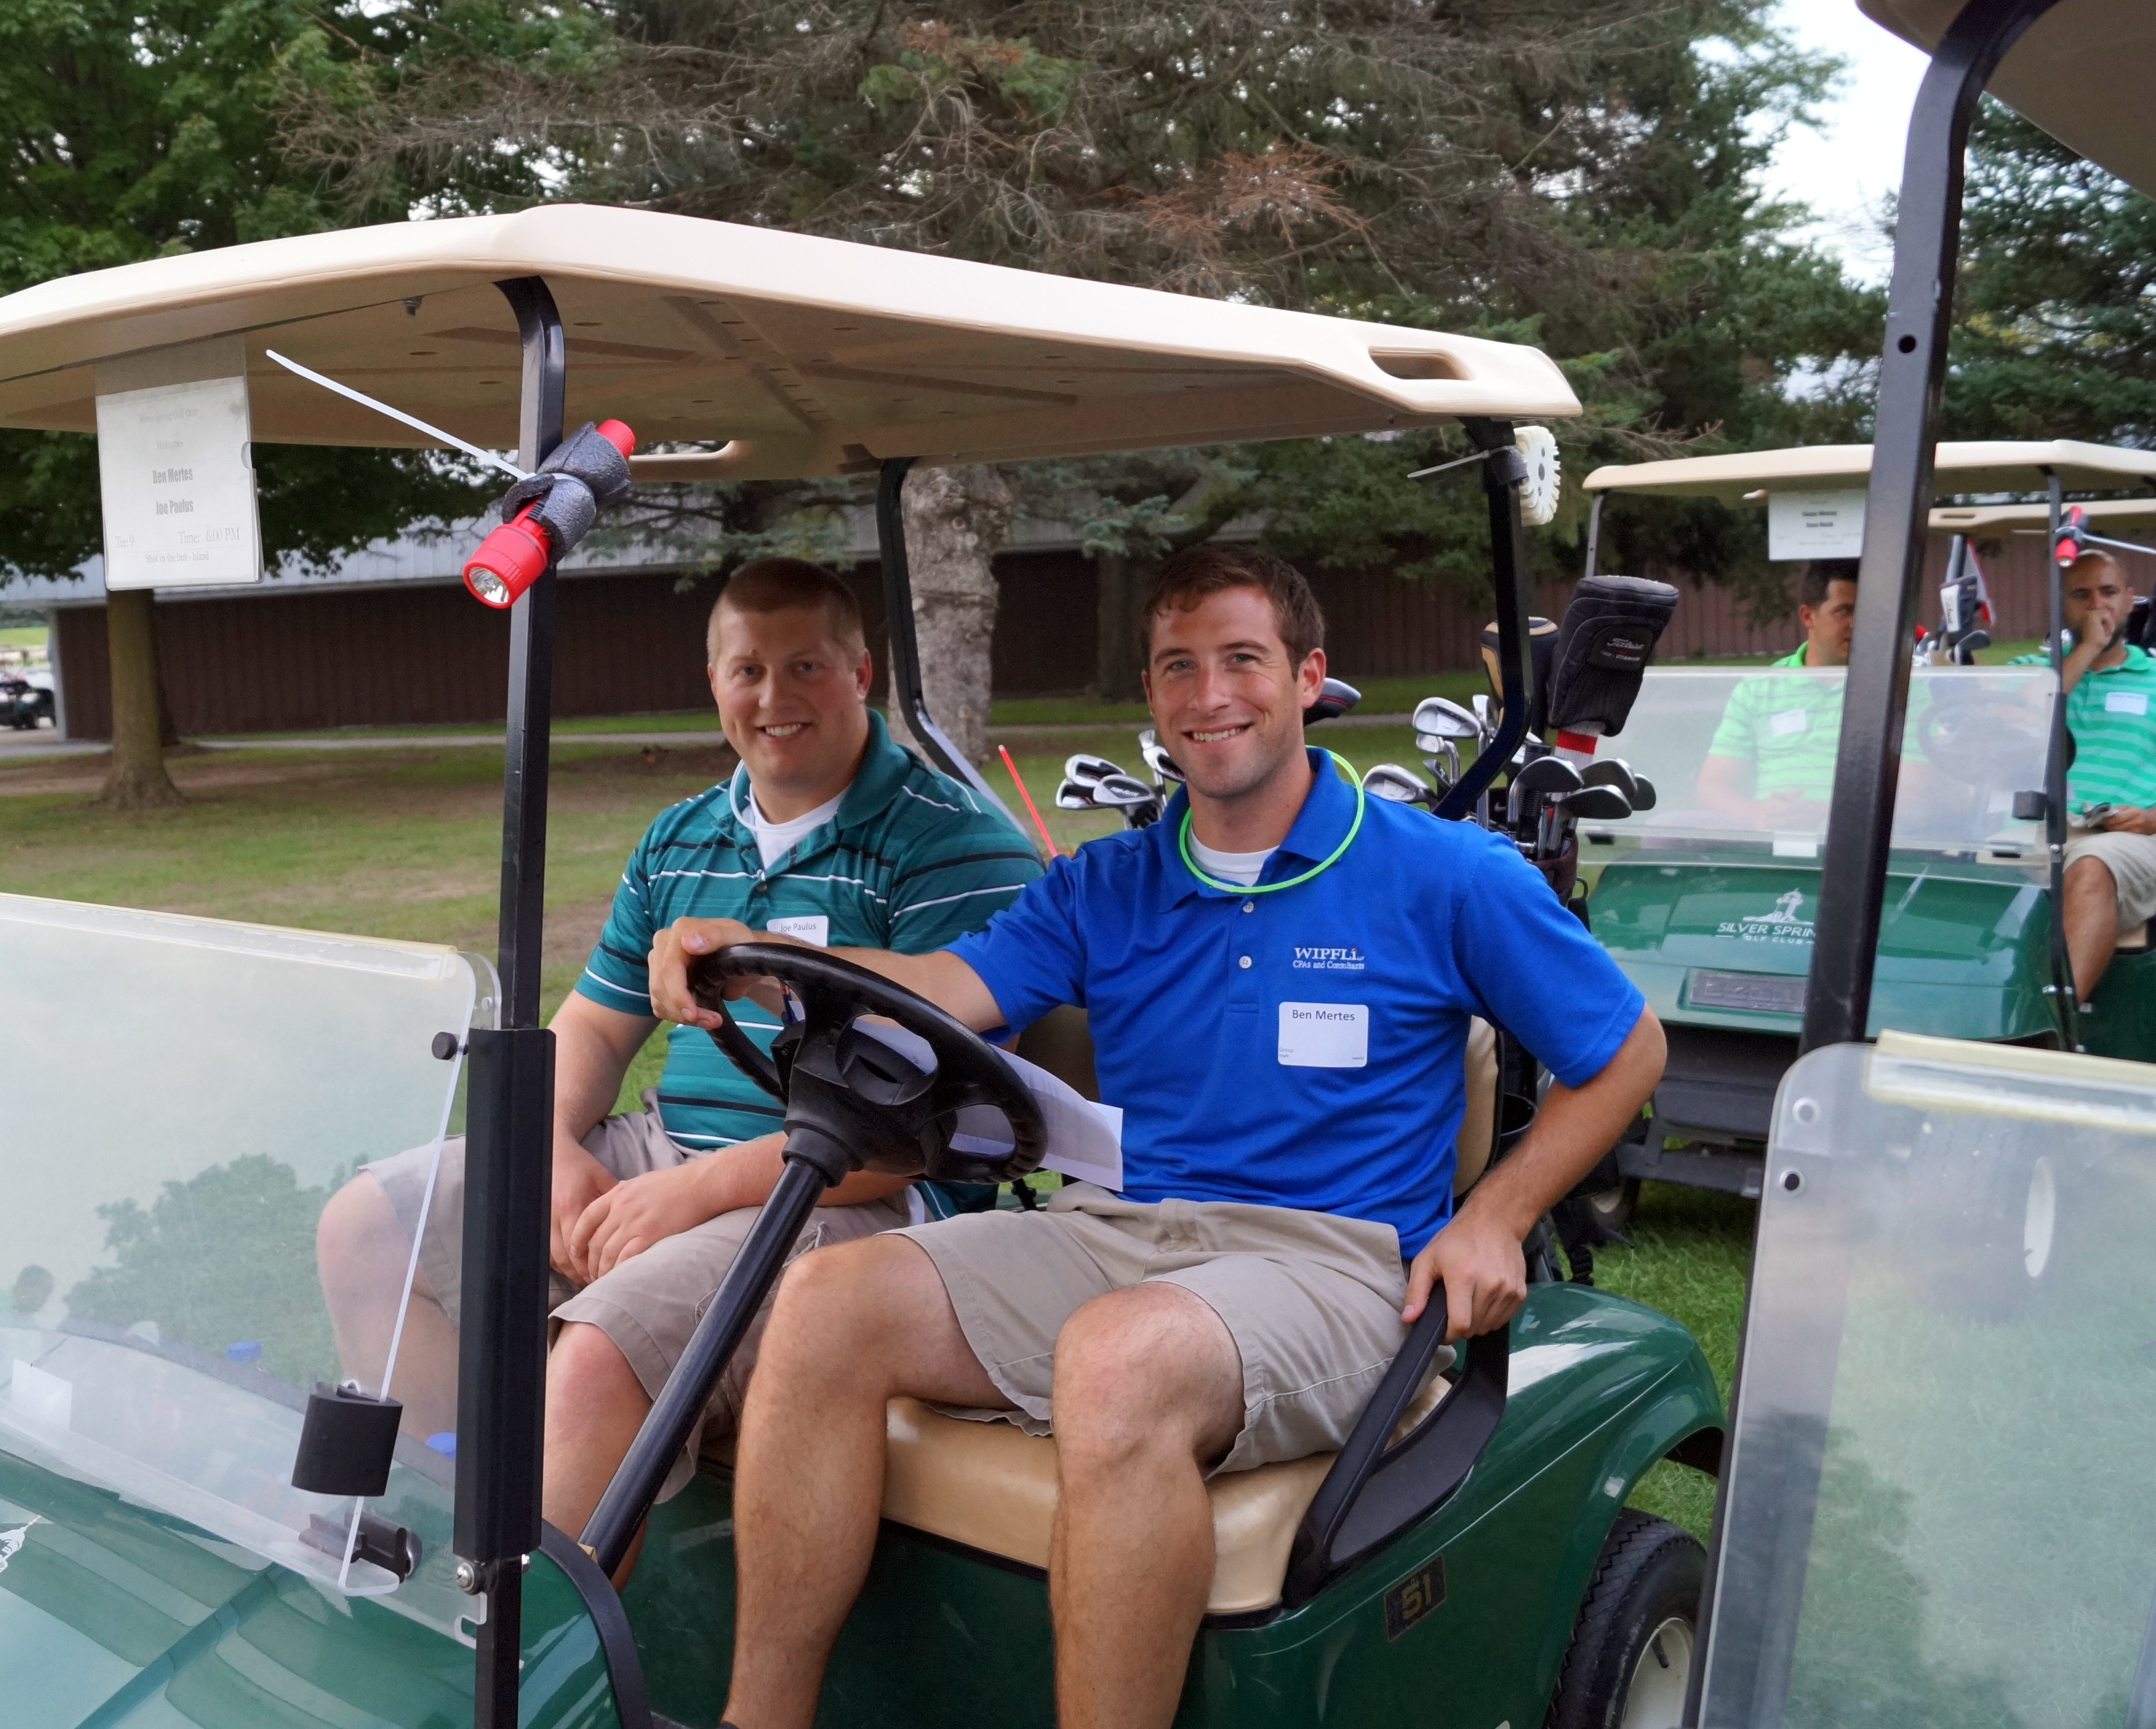 Two young men are very happily sitting in a golf cart.